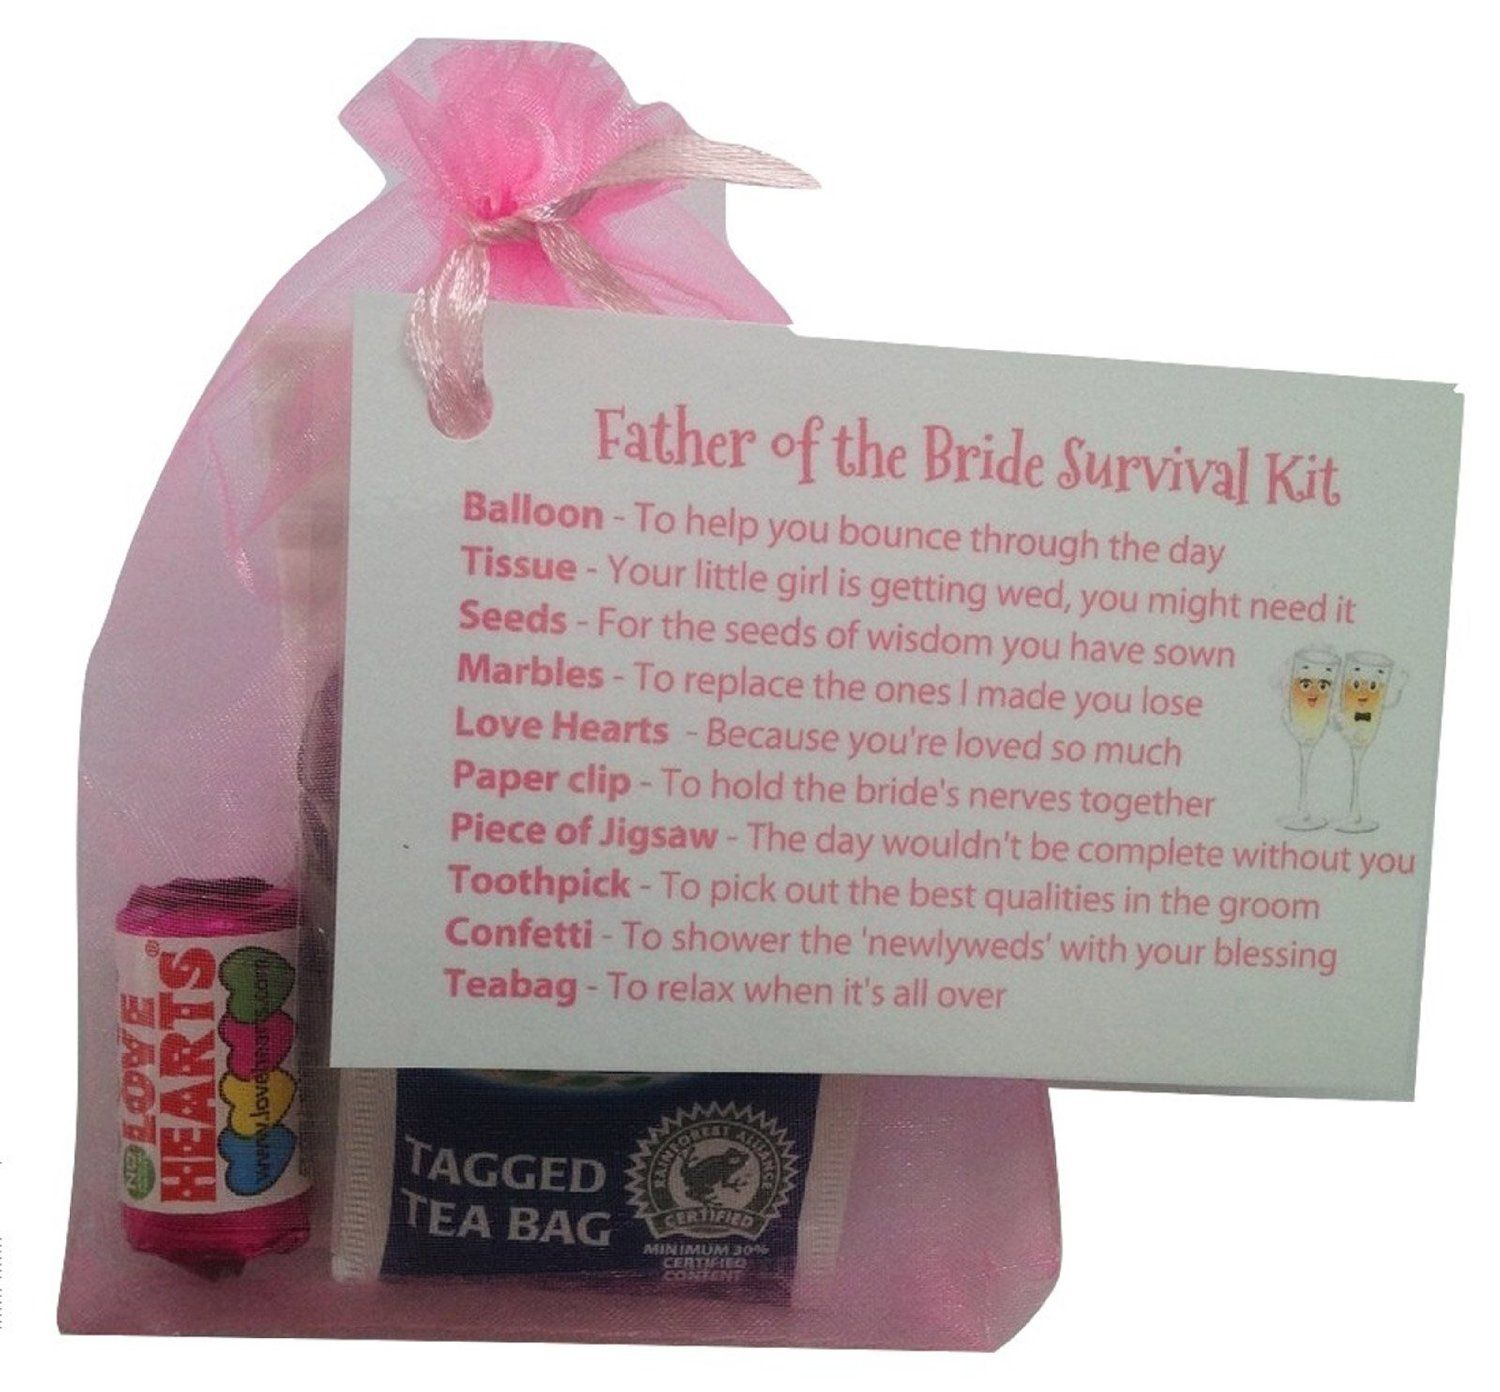 Father of the bride survival kit in pinkthank you gift